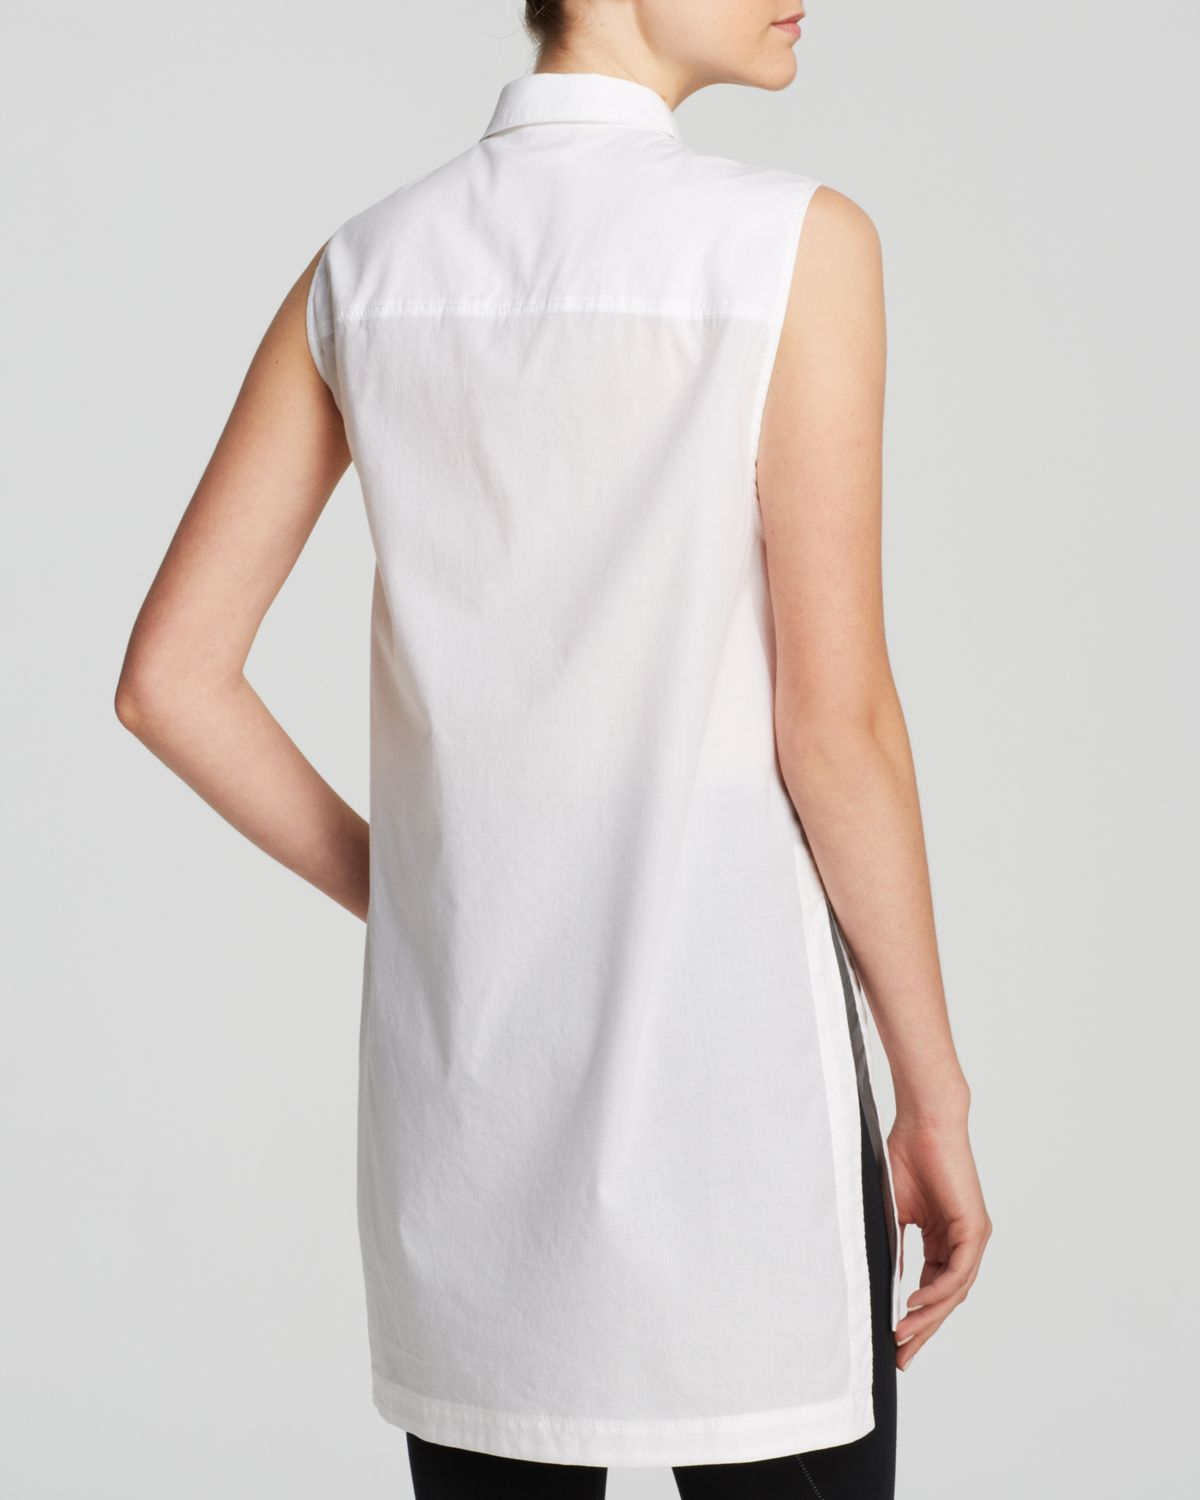 924e66c2 Helmut Lang Top - Cotton Lawn Sleeveless Tunic in White - Lyst